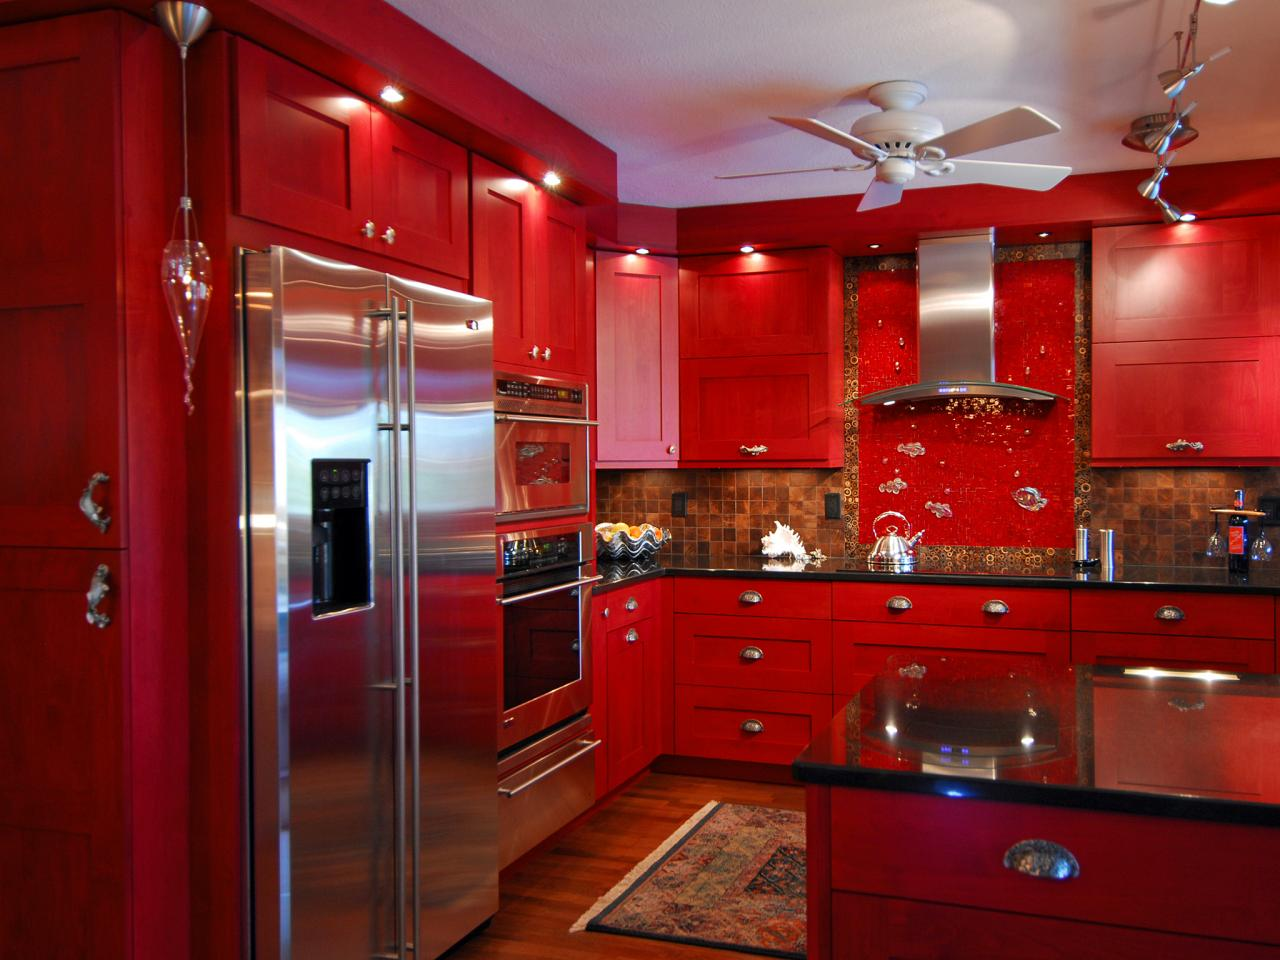 25 colorful kitchens  msncom